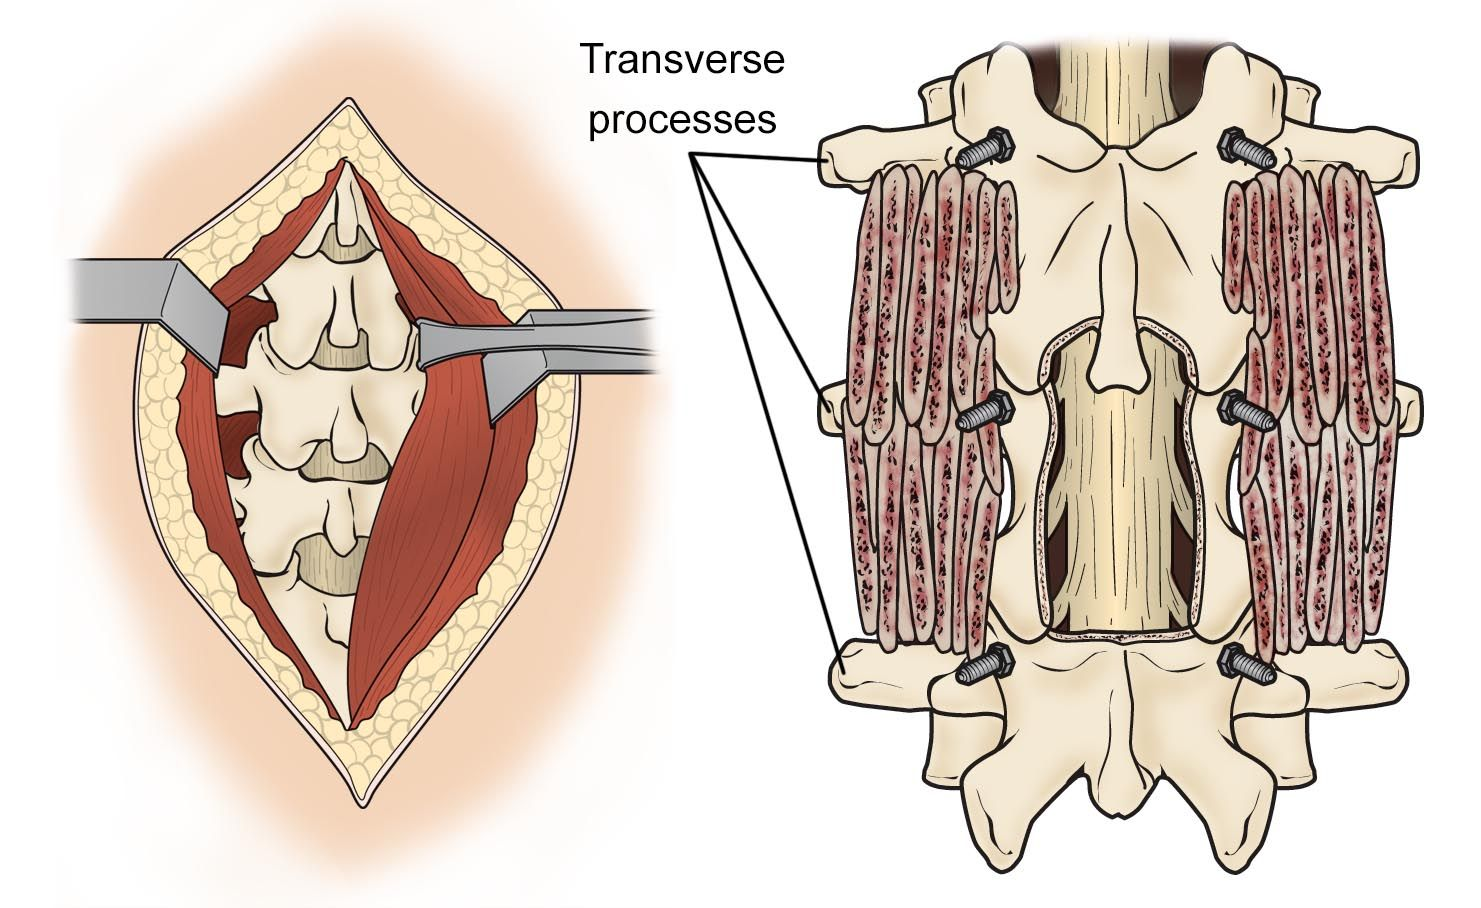 lumbar spine decompression and bone graft placement